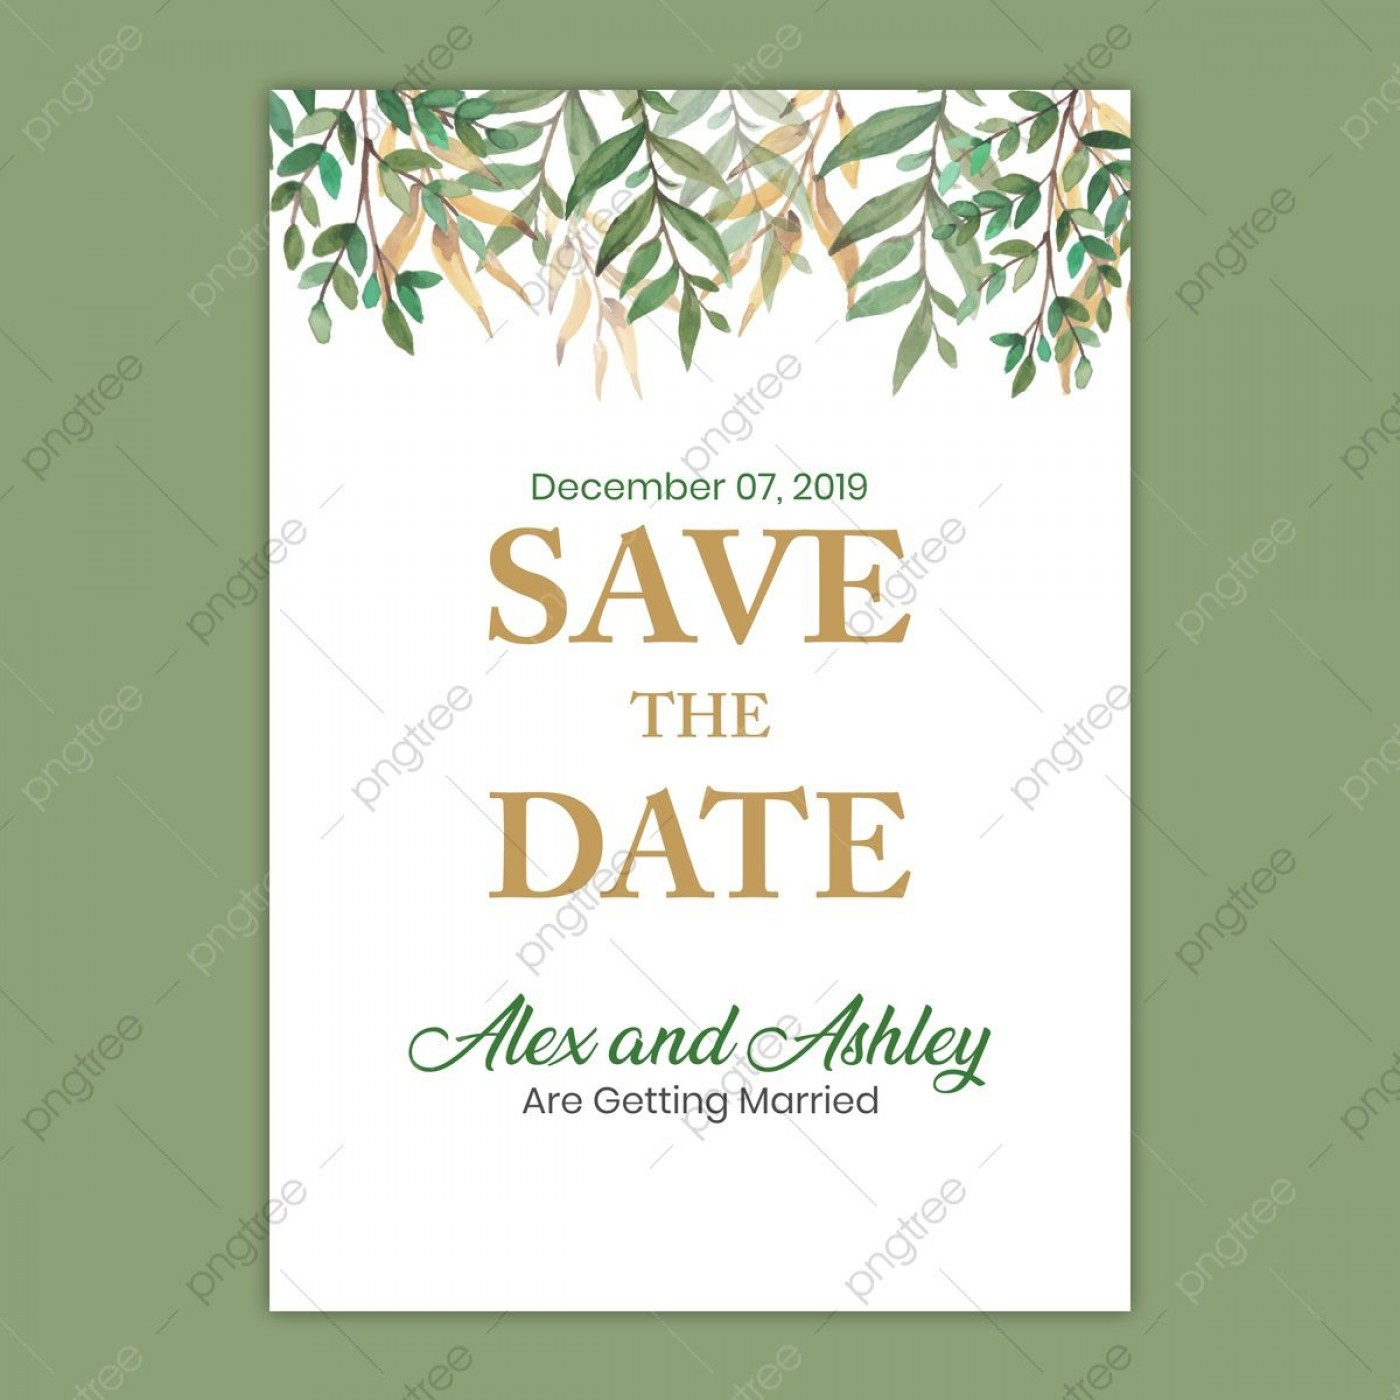 005 Unusual Save The Date Flyer Template Picture  Word Event1400